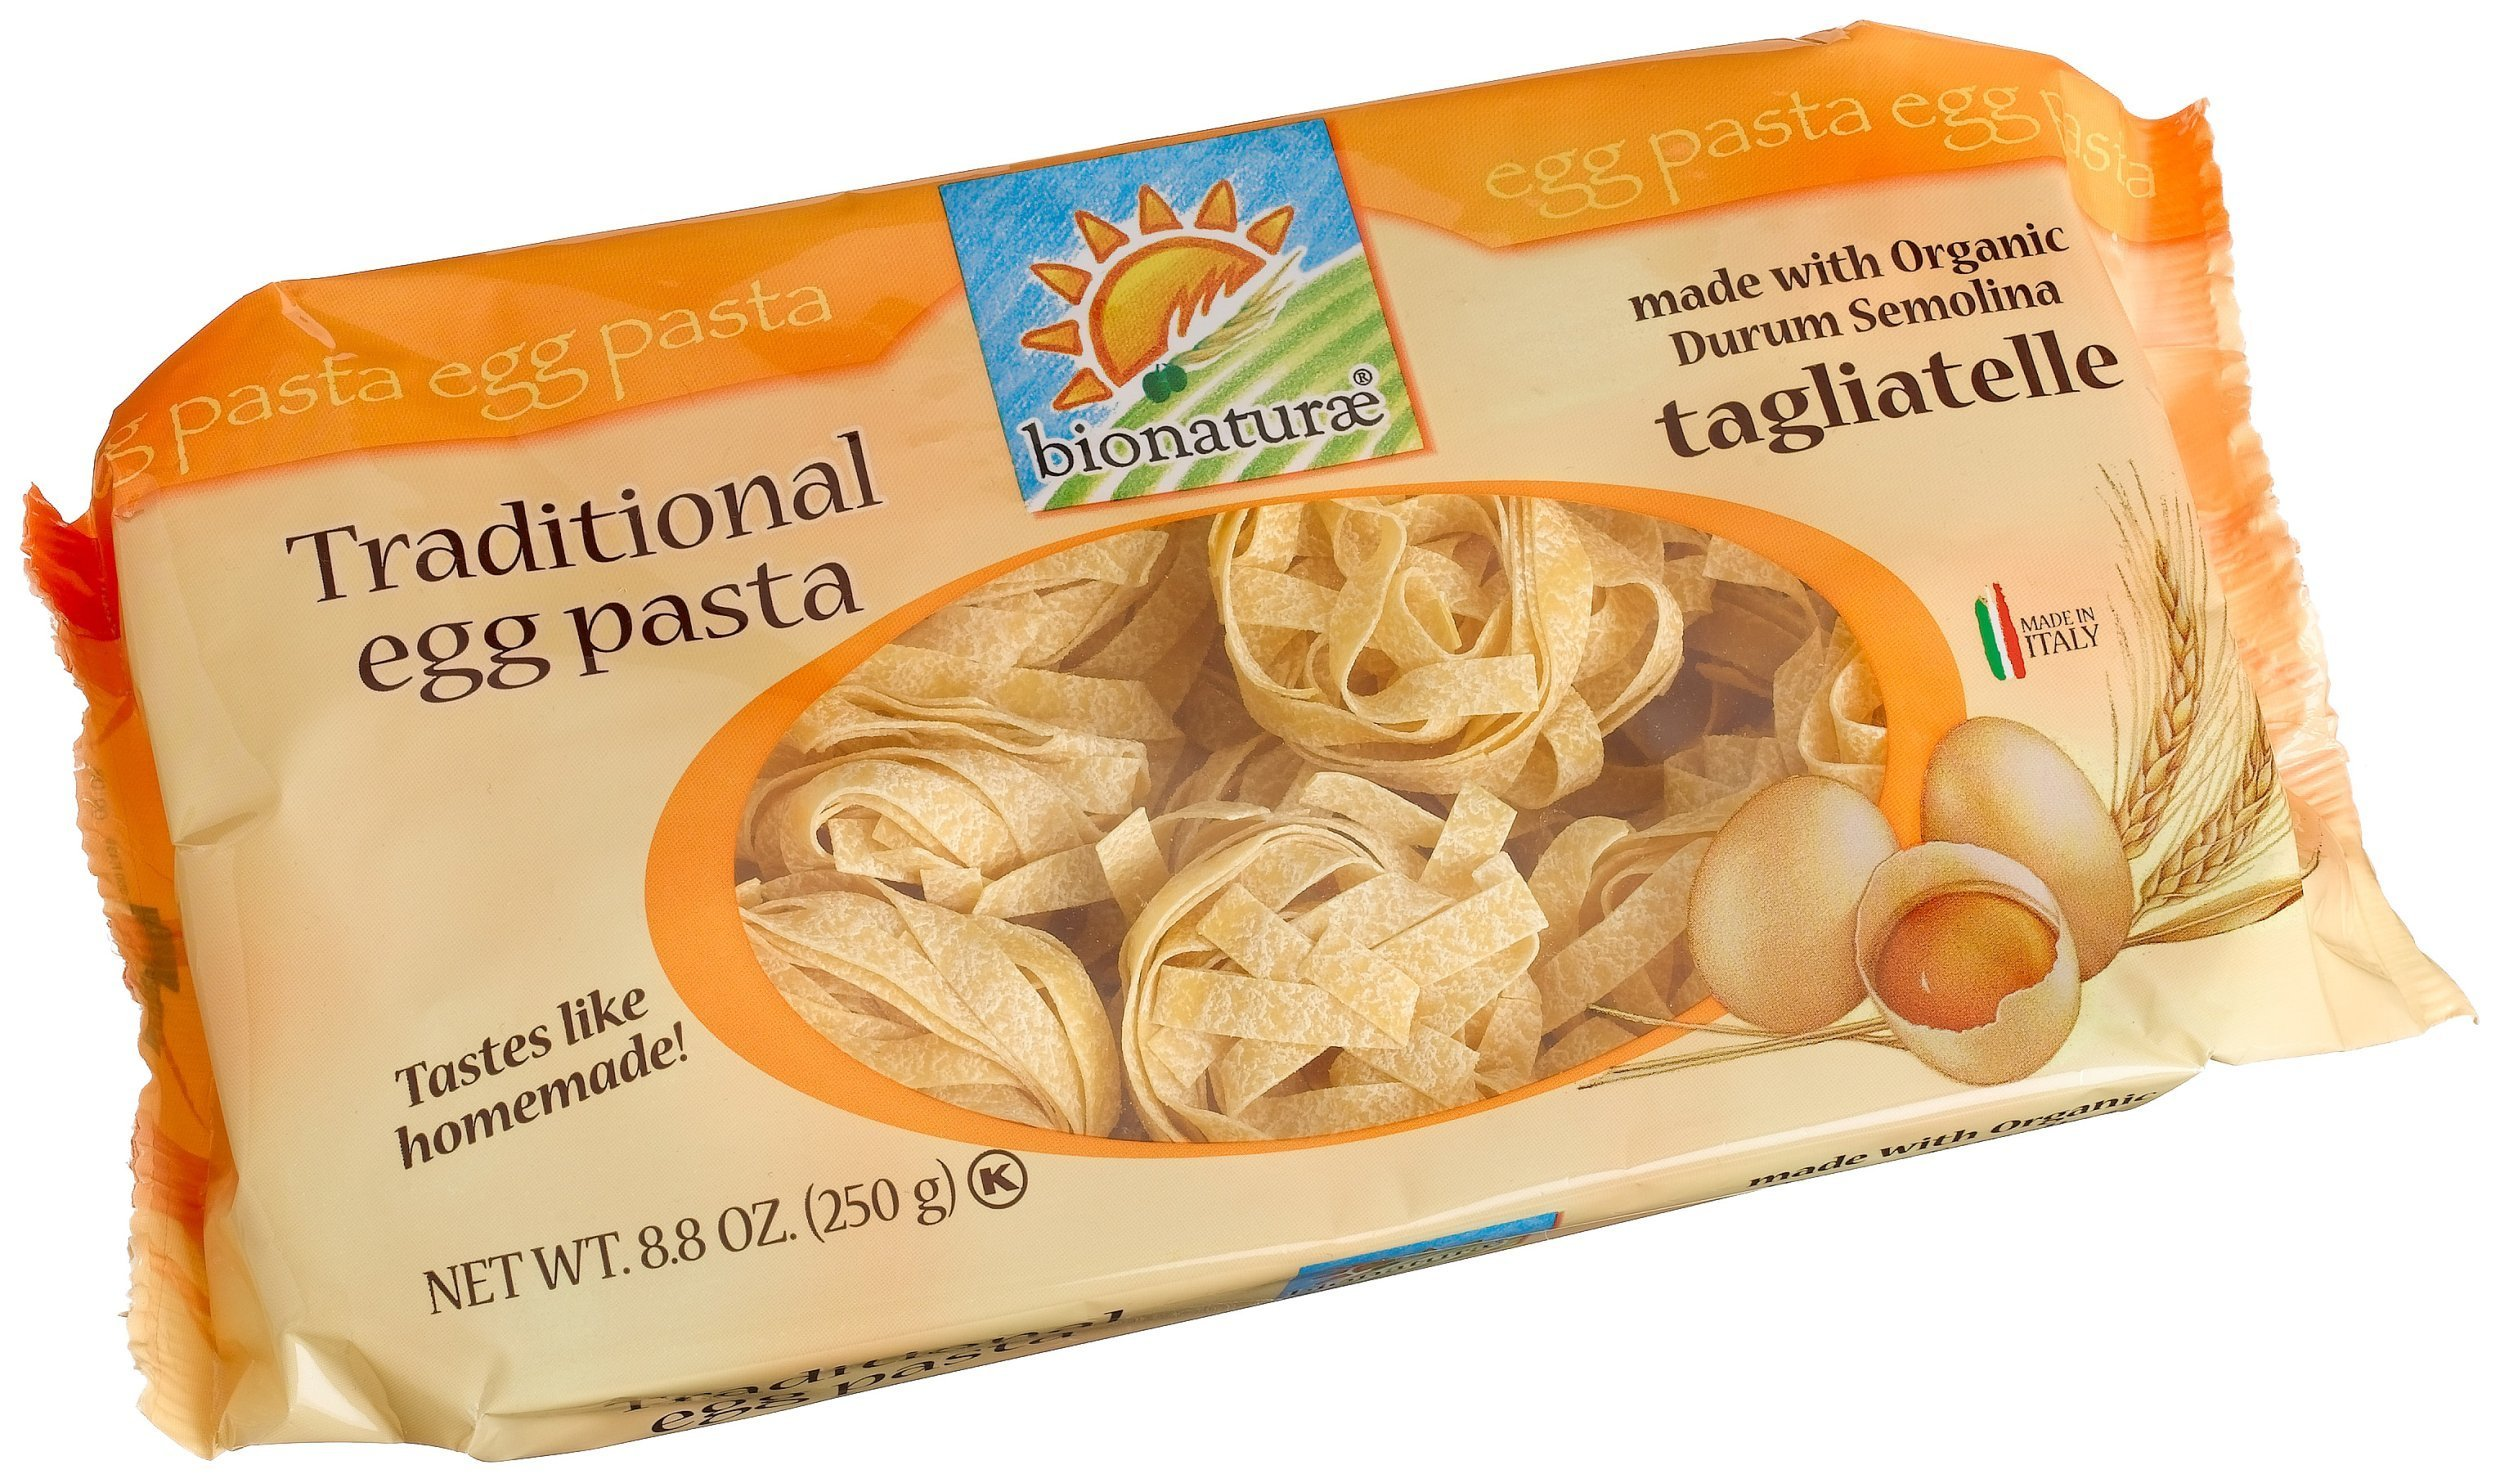 bionaturae Tagliatelle Egg Pasta, 8.8 Ounce Bags (Pack of 6)